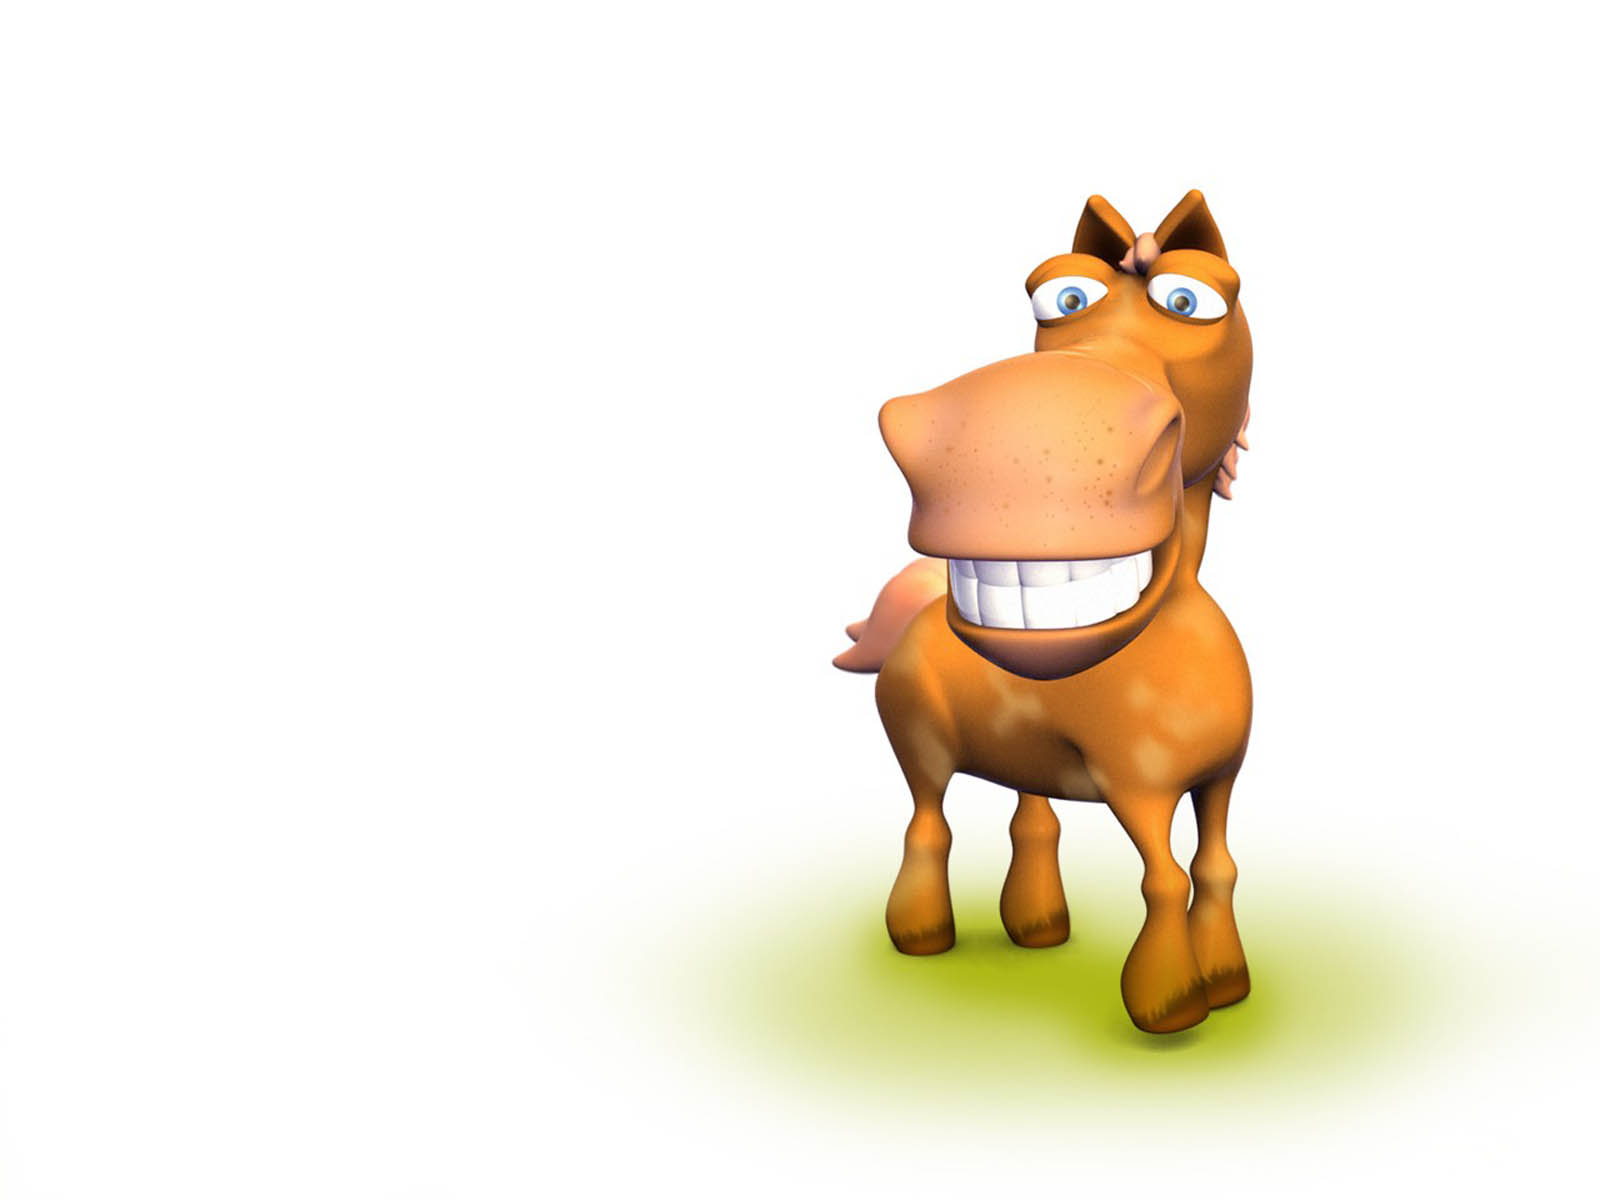 wallpapers: Funny 3D Animals